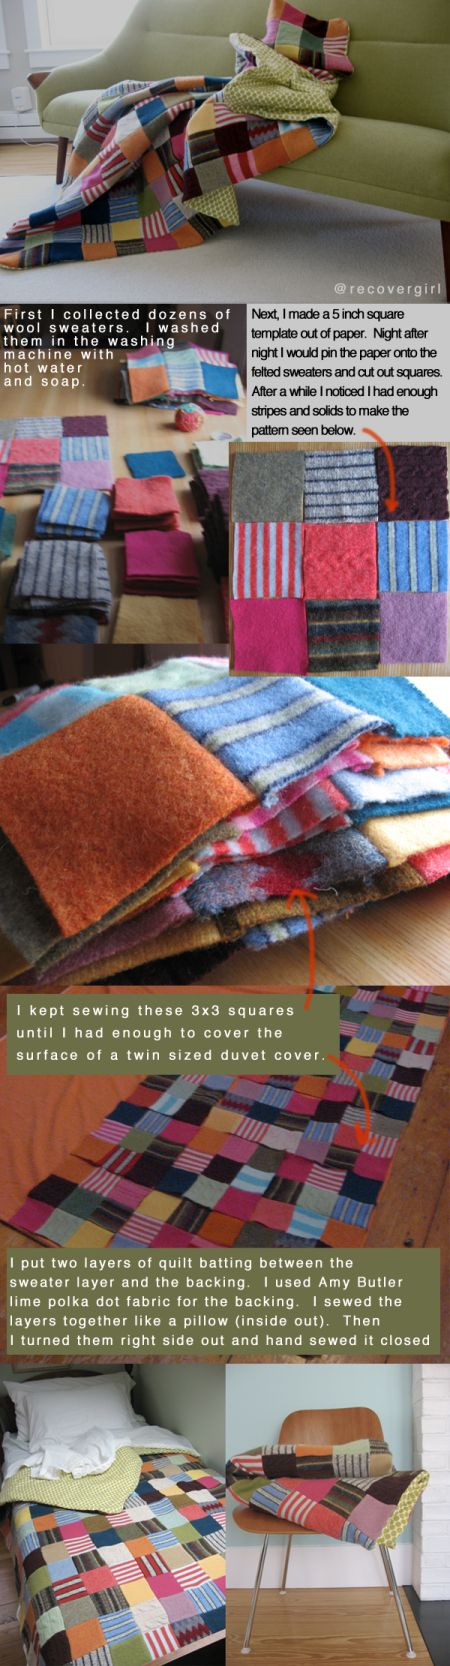 recovergirl-sweater-blanket-how-to. This would make a great gift or a great item to donate.